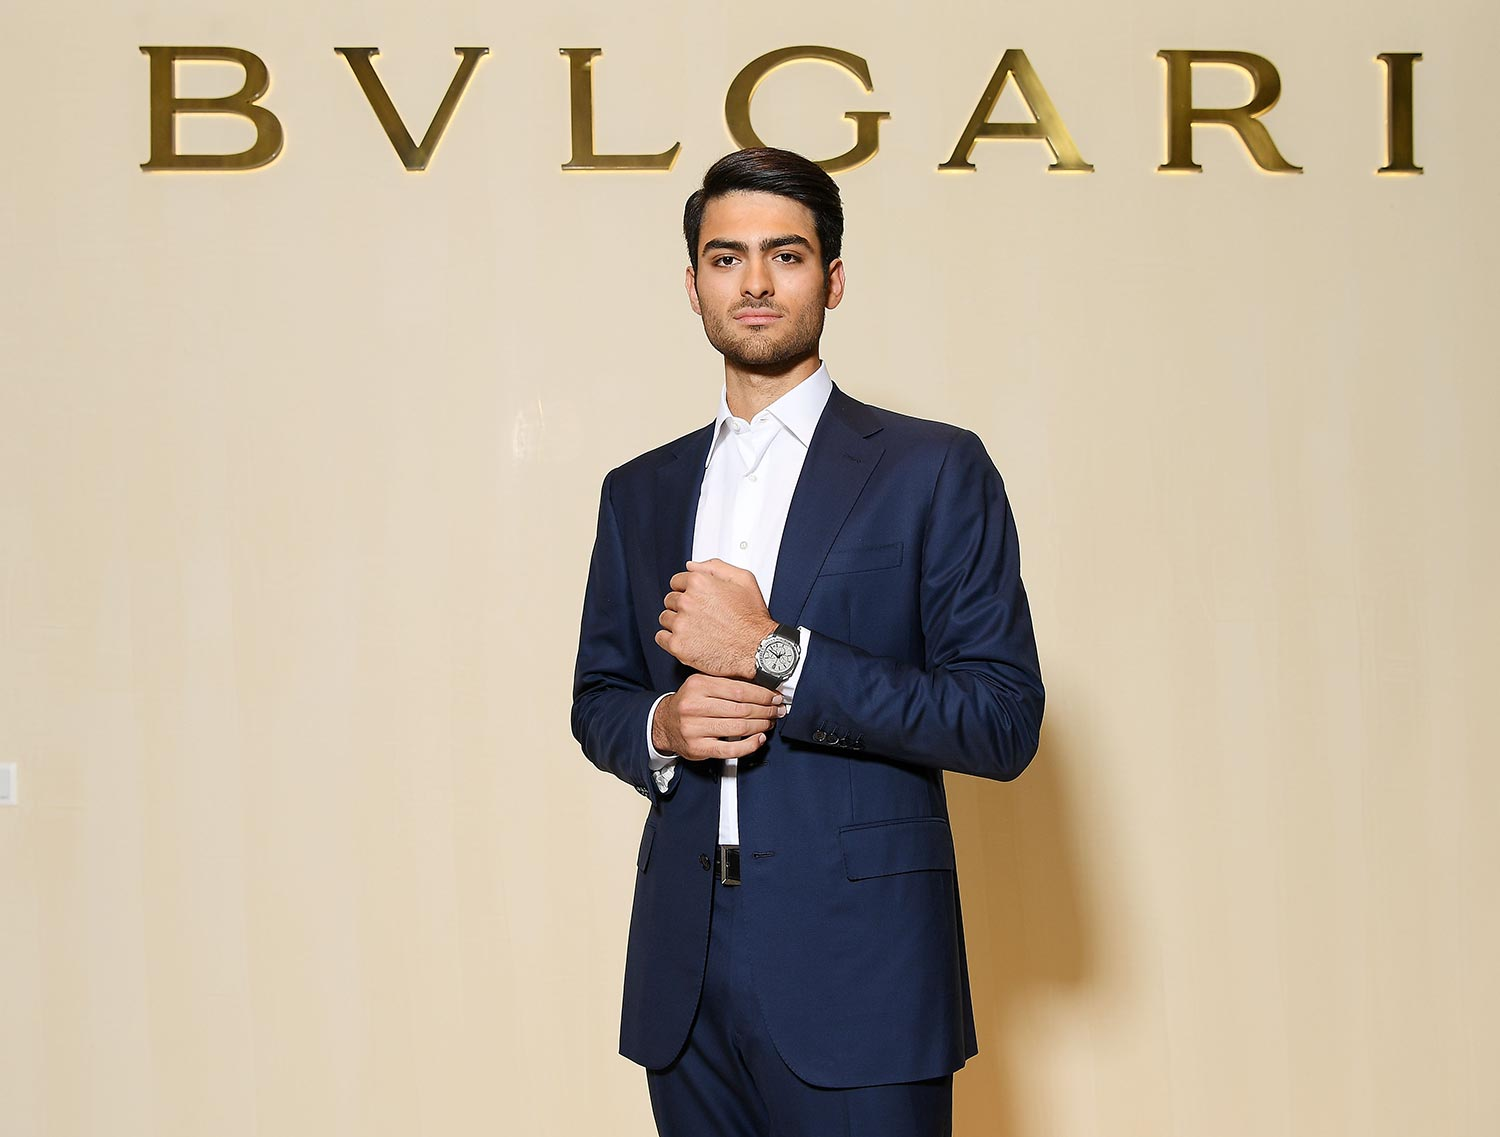 Bulgari Basel Press Party - Matteo Bocelli - Grooming Massimo Serini